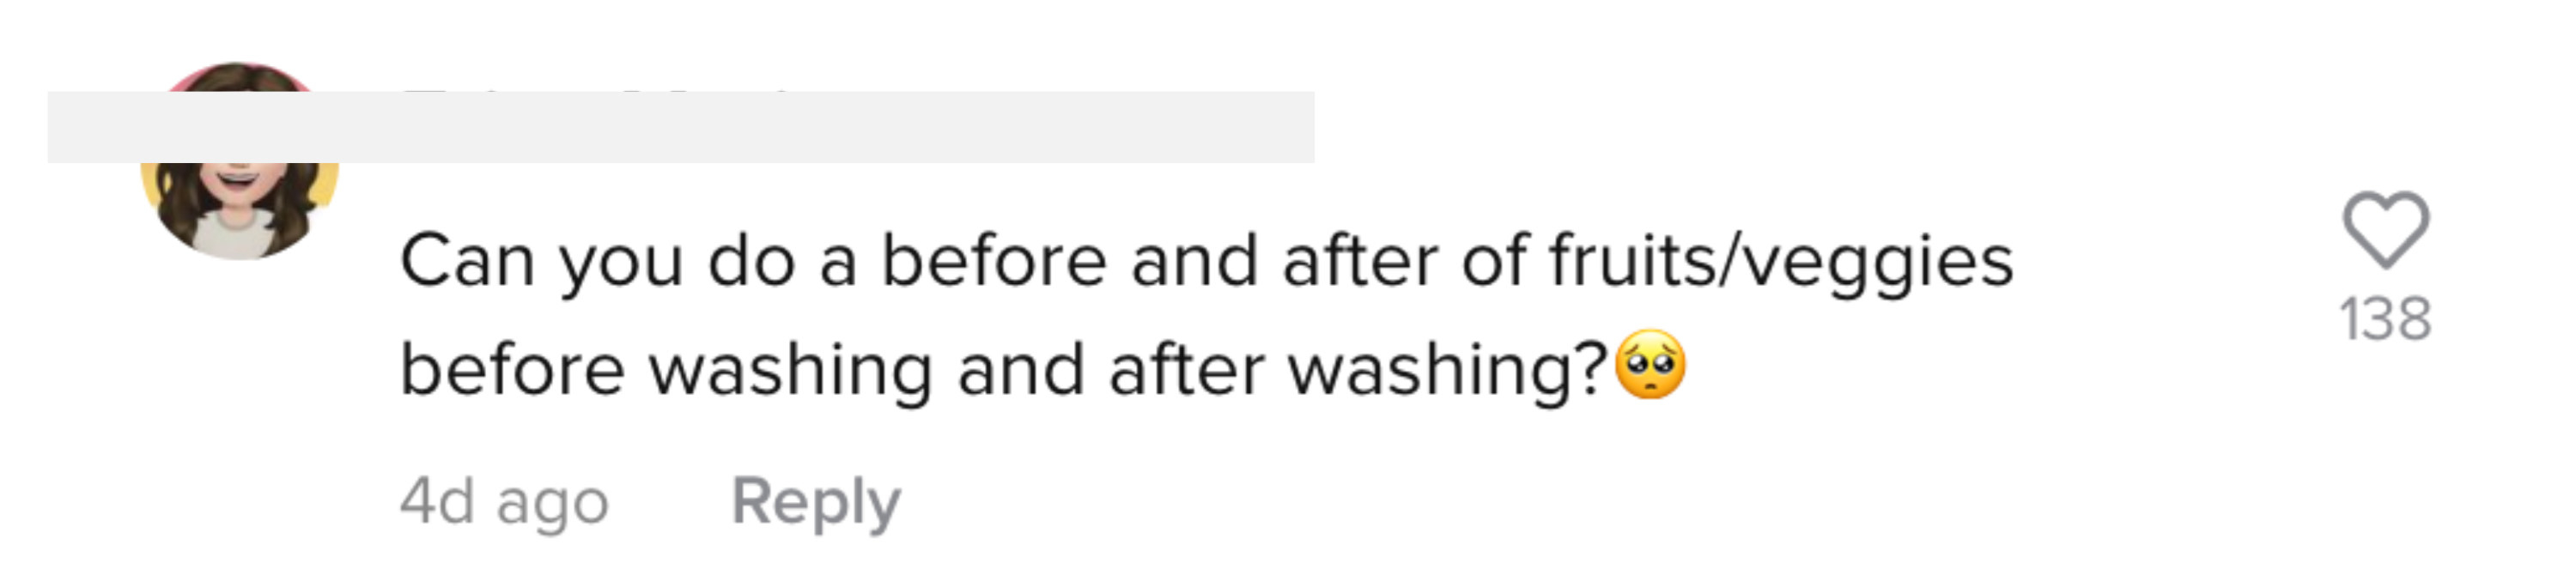 "One user asked, ""Can you do a before and after of fruits/veggies before washing and after washing?"""